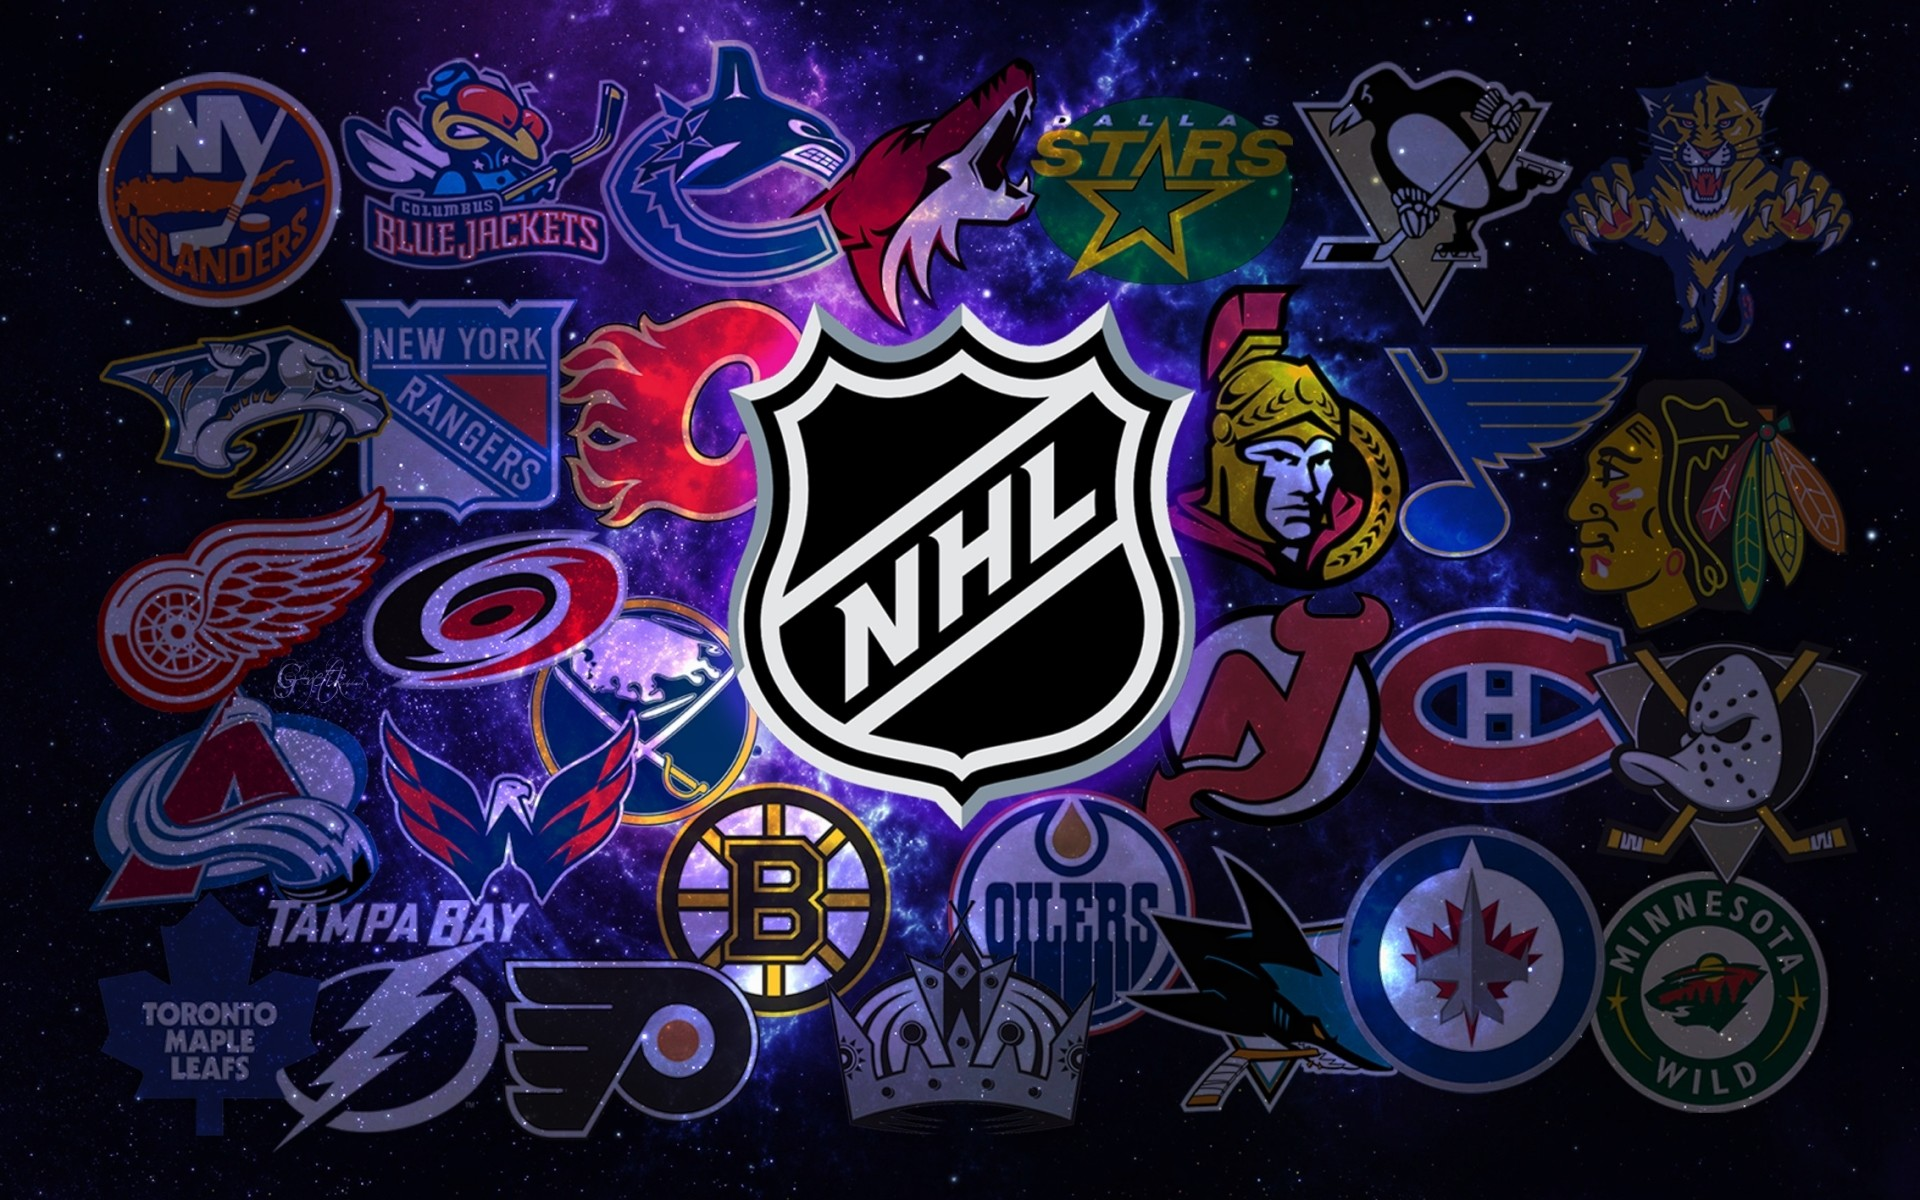 1920x1200 nhl team wallpaper share this awesome nhl hockey wallpaper on facebook .